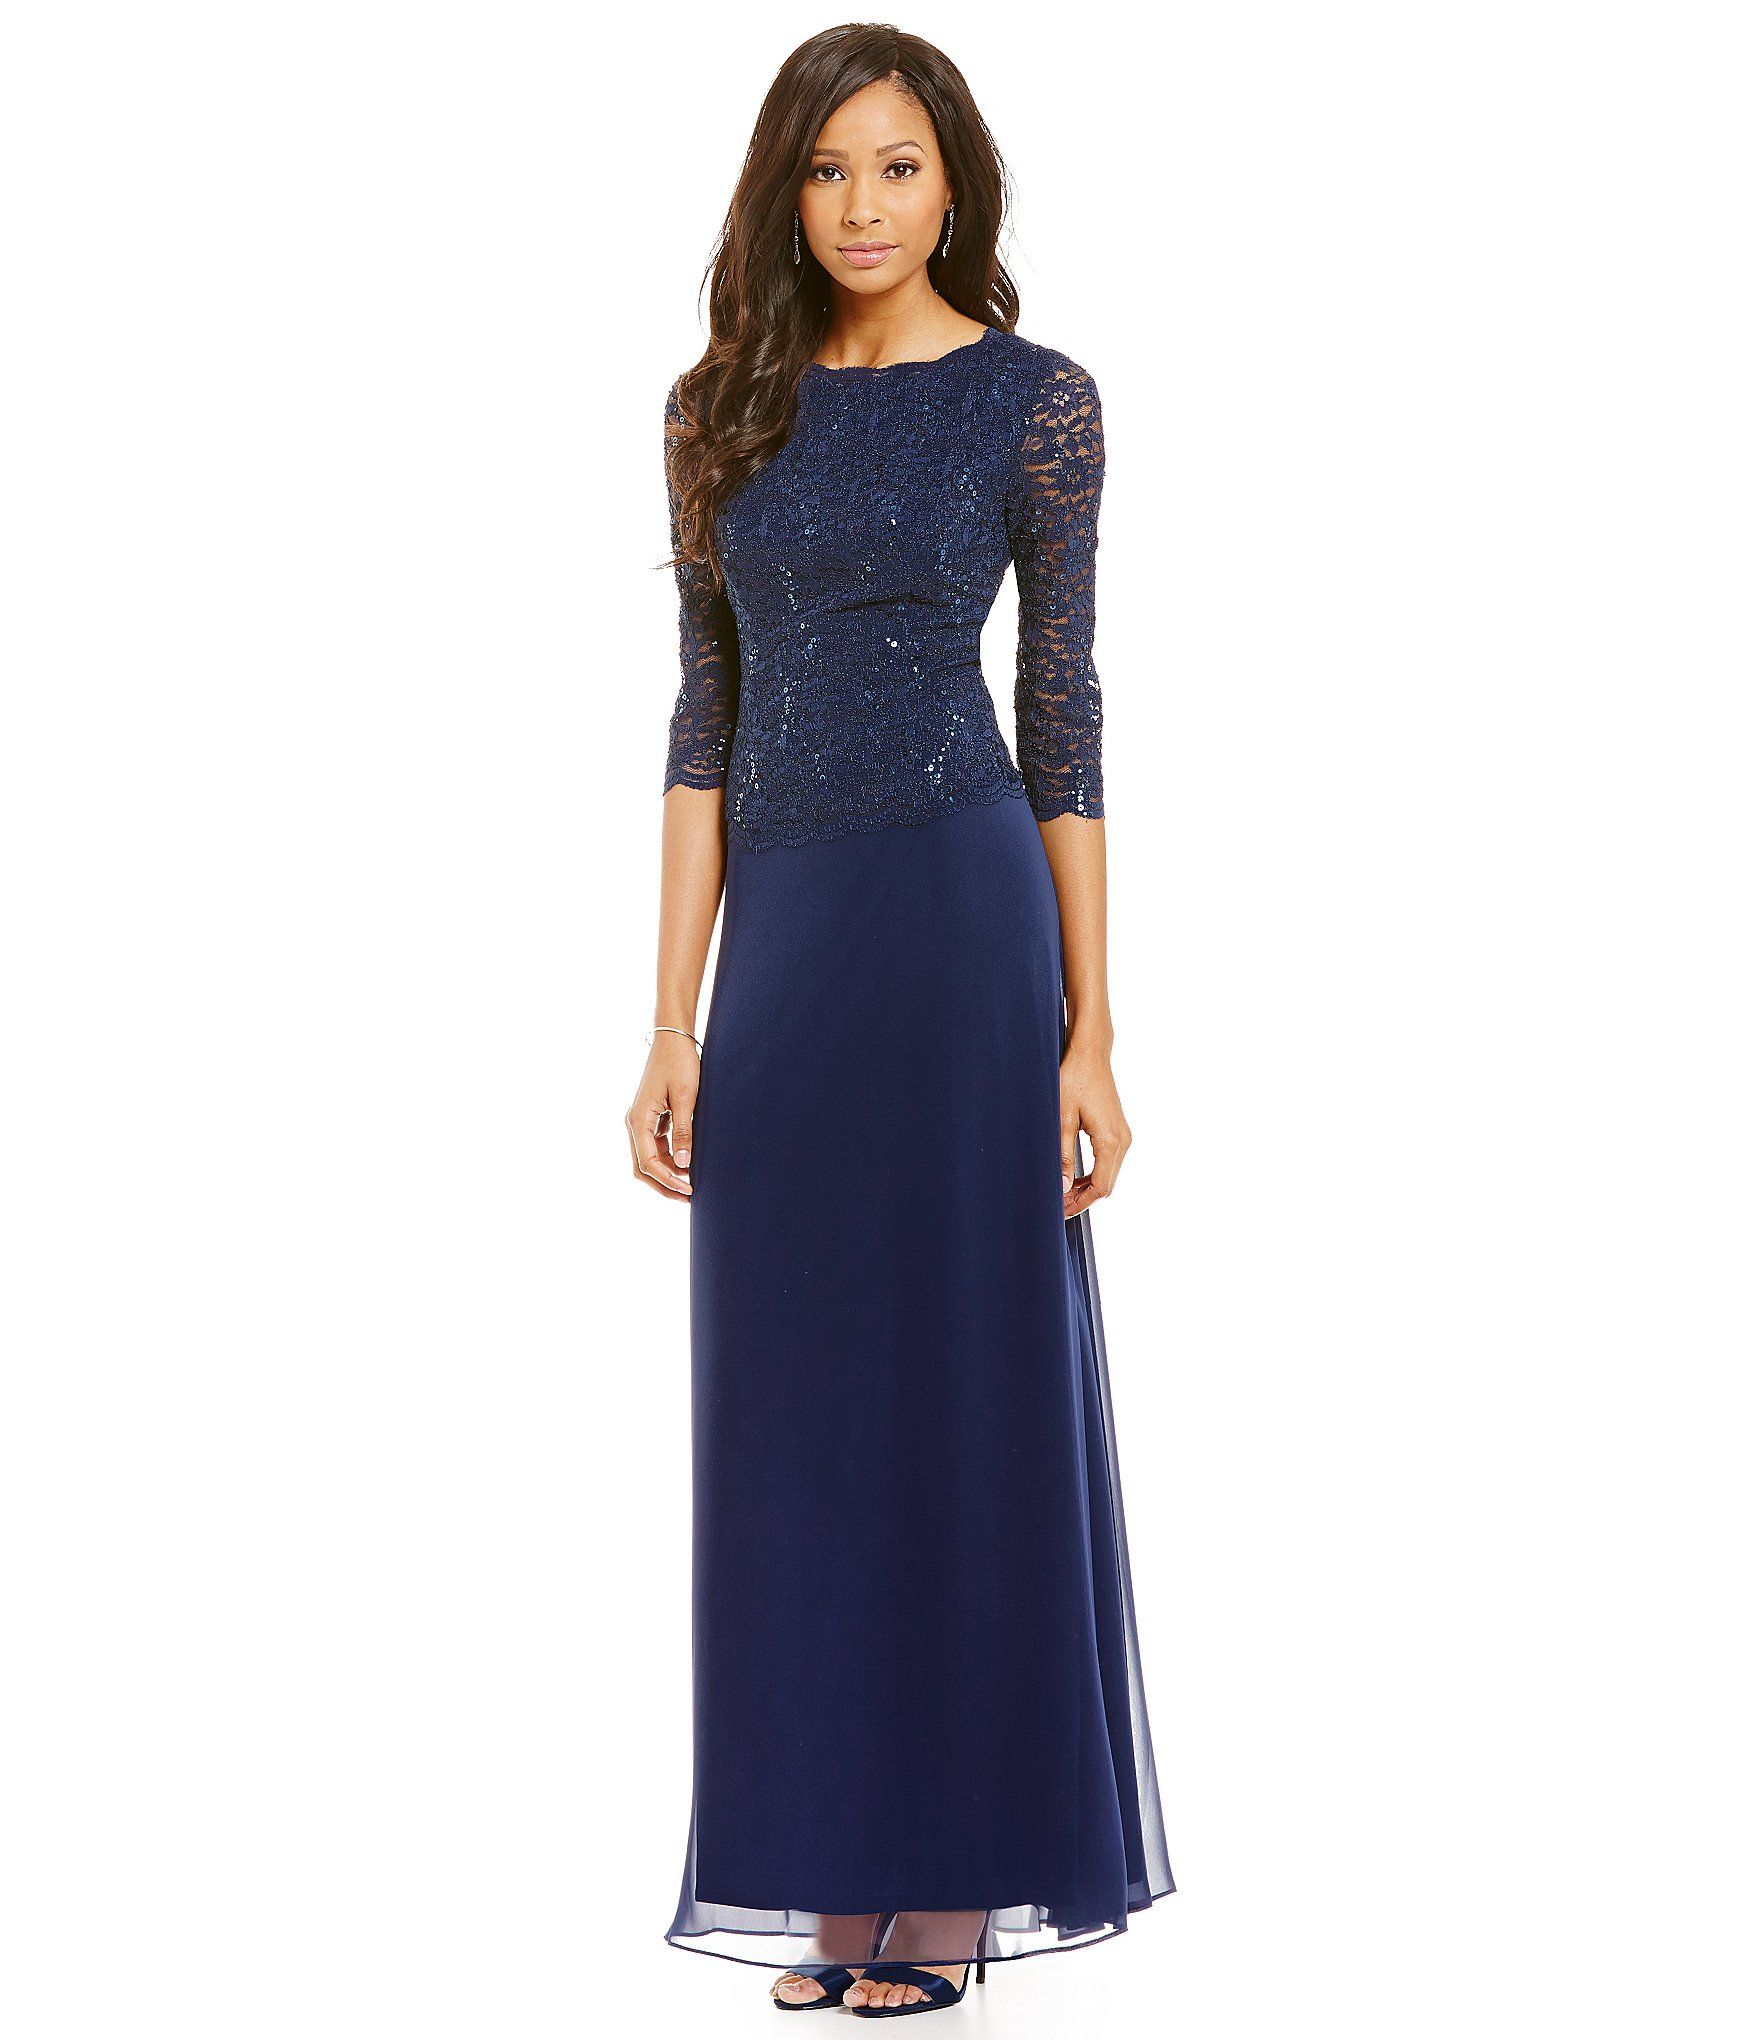 Alex Evenings Sequined Lace & Chiffon Gown | Clothing | Pinterest ...